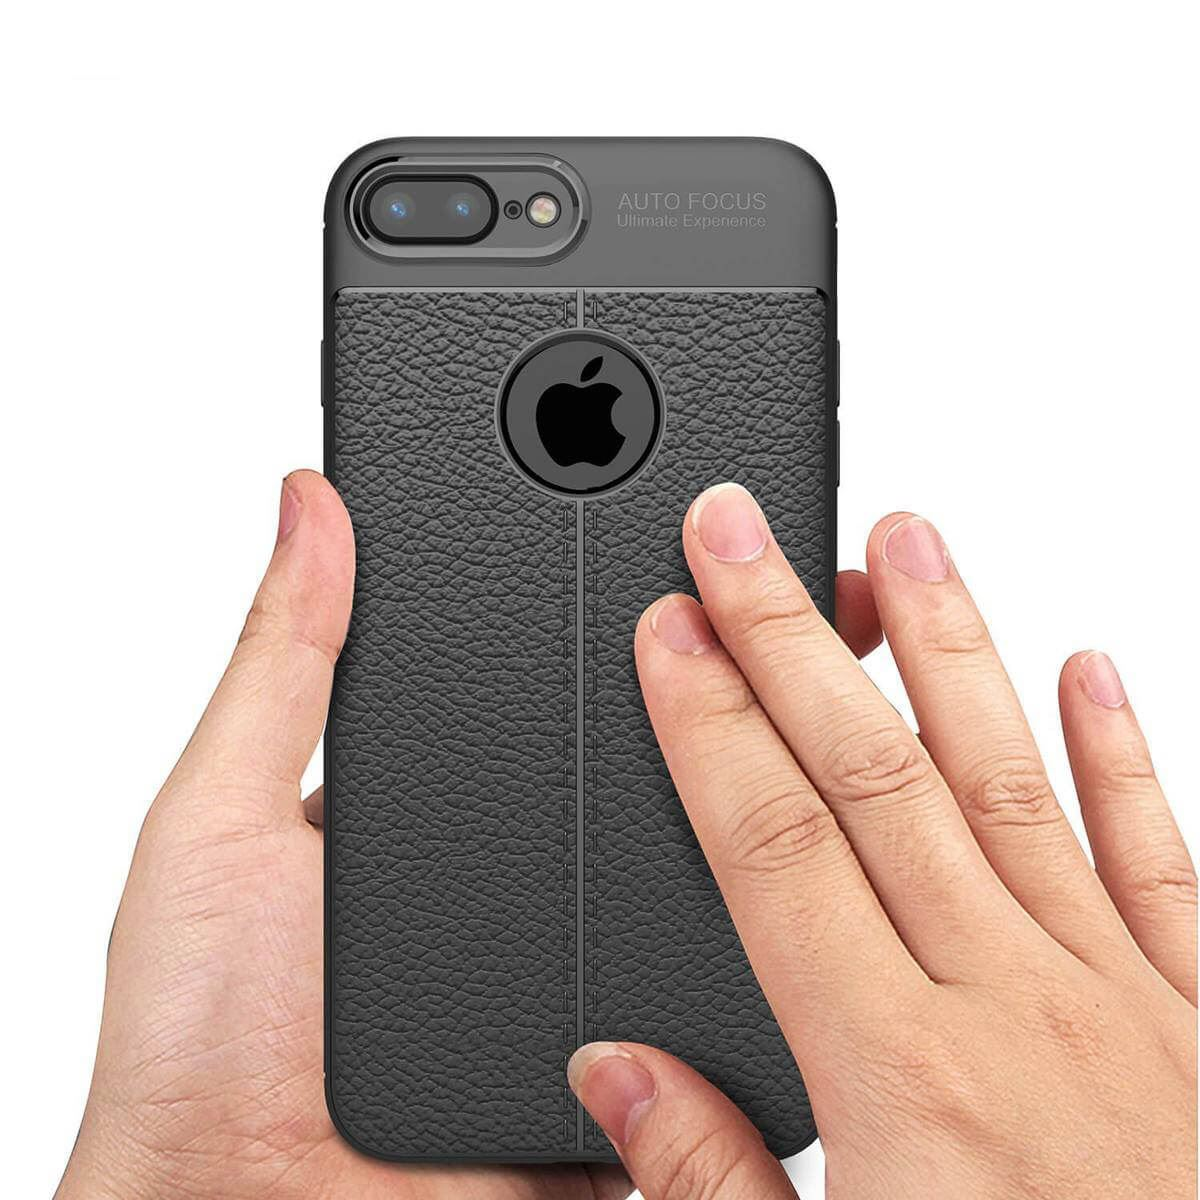 thumbnail 17 - Protective Leather Case For Apple iPhone Luxury Shockproof Pattern Soft TPU